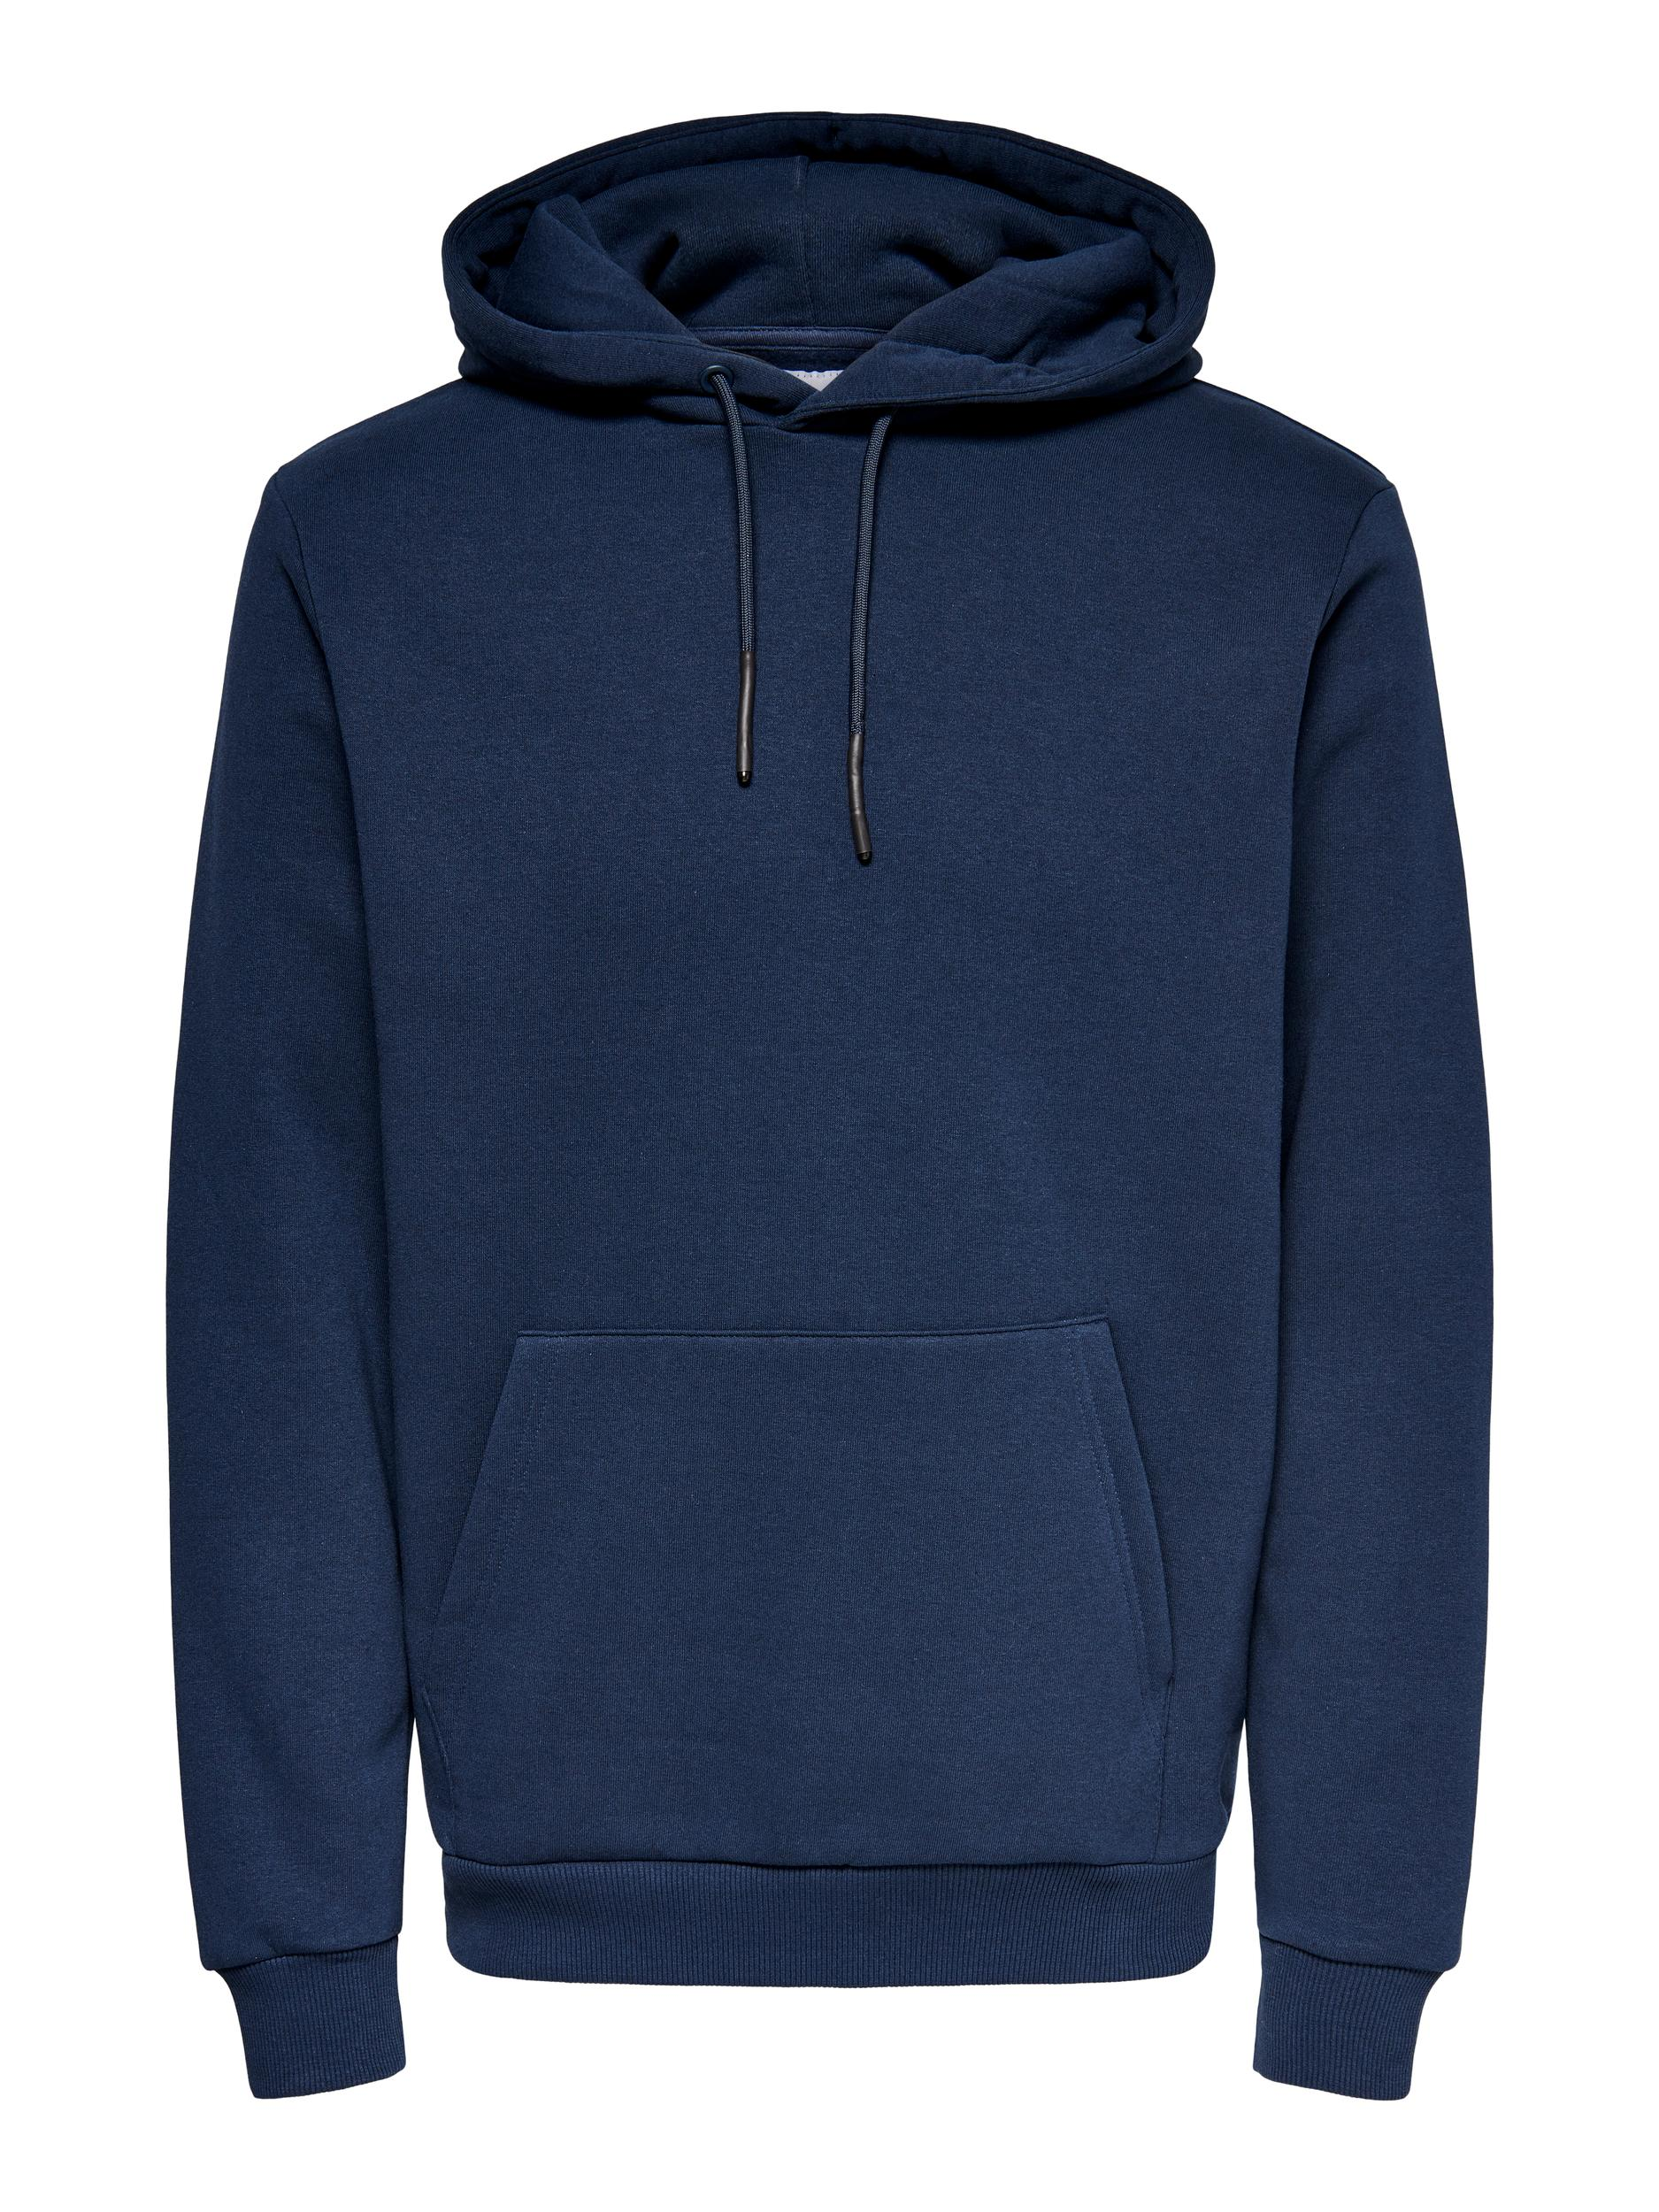 Only & Sons Ceres Life hoodie, dress blues, x-large